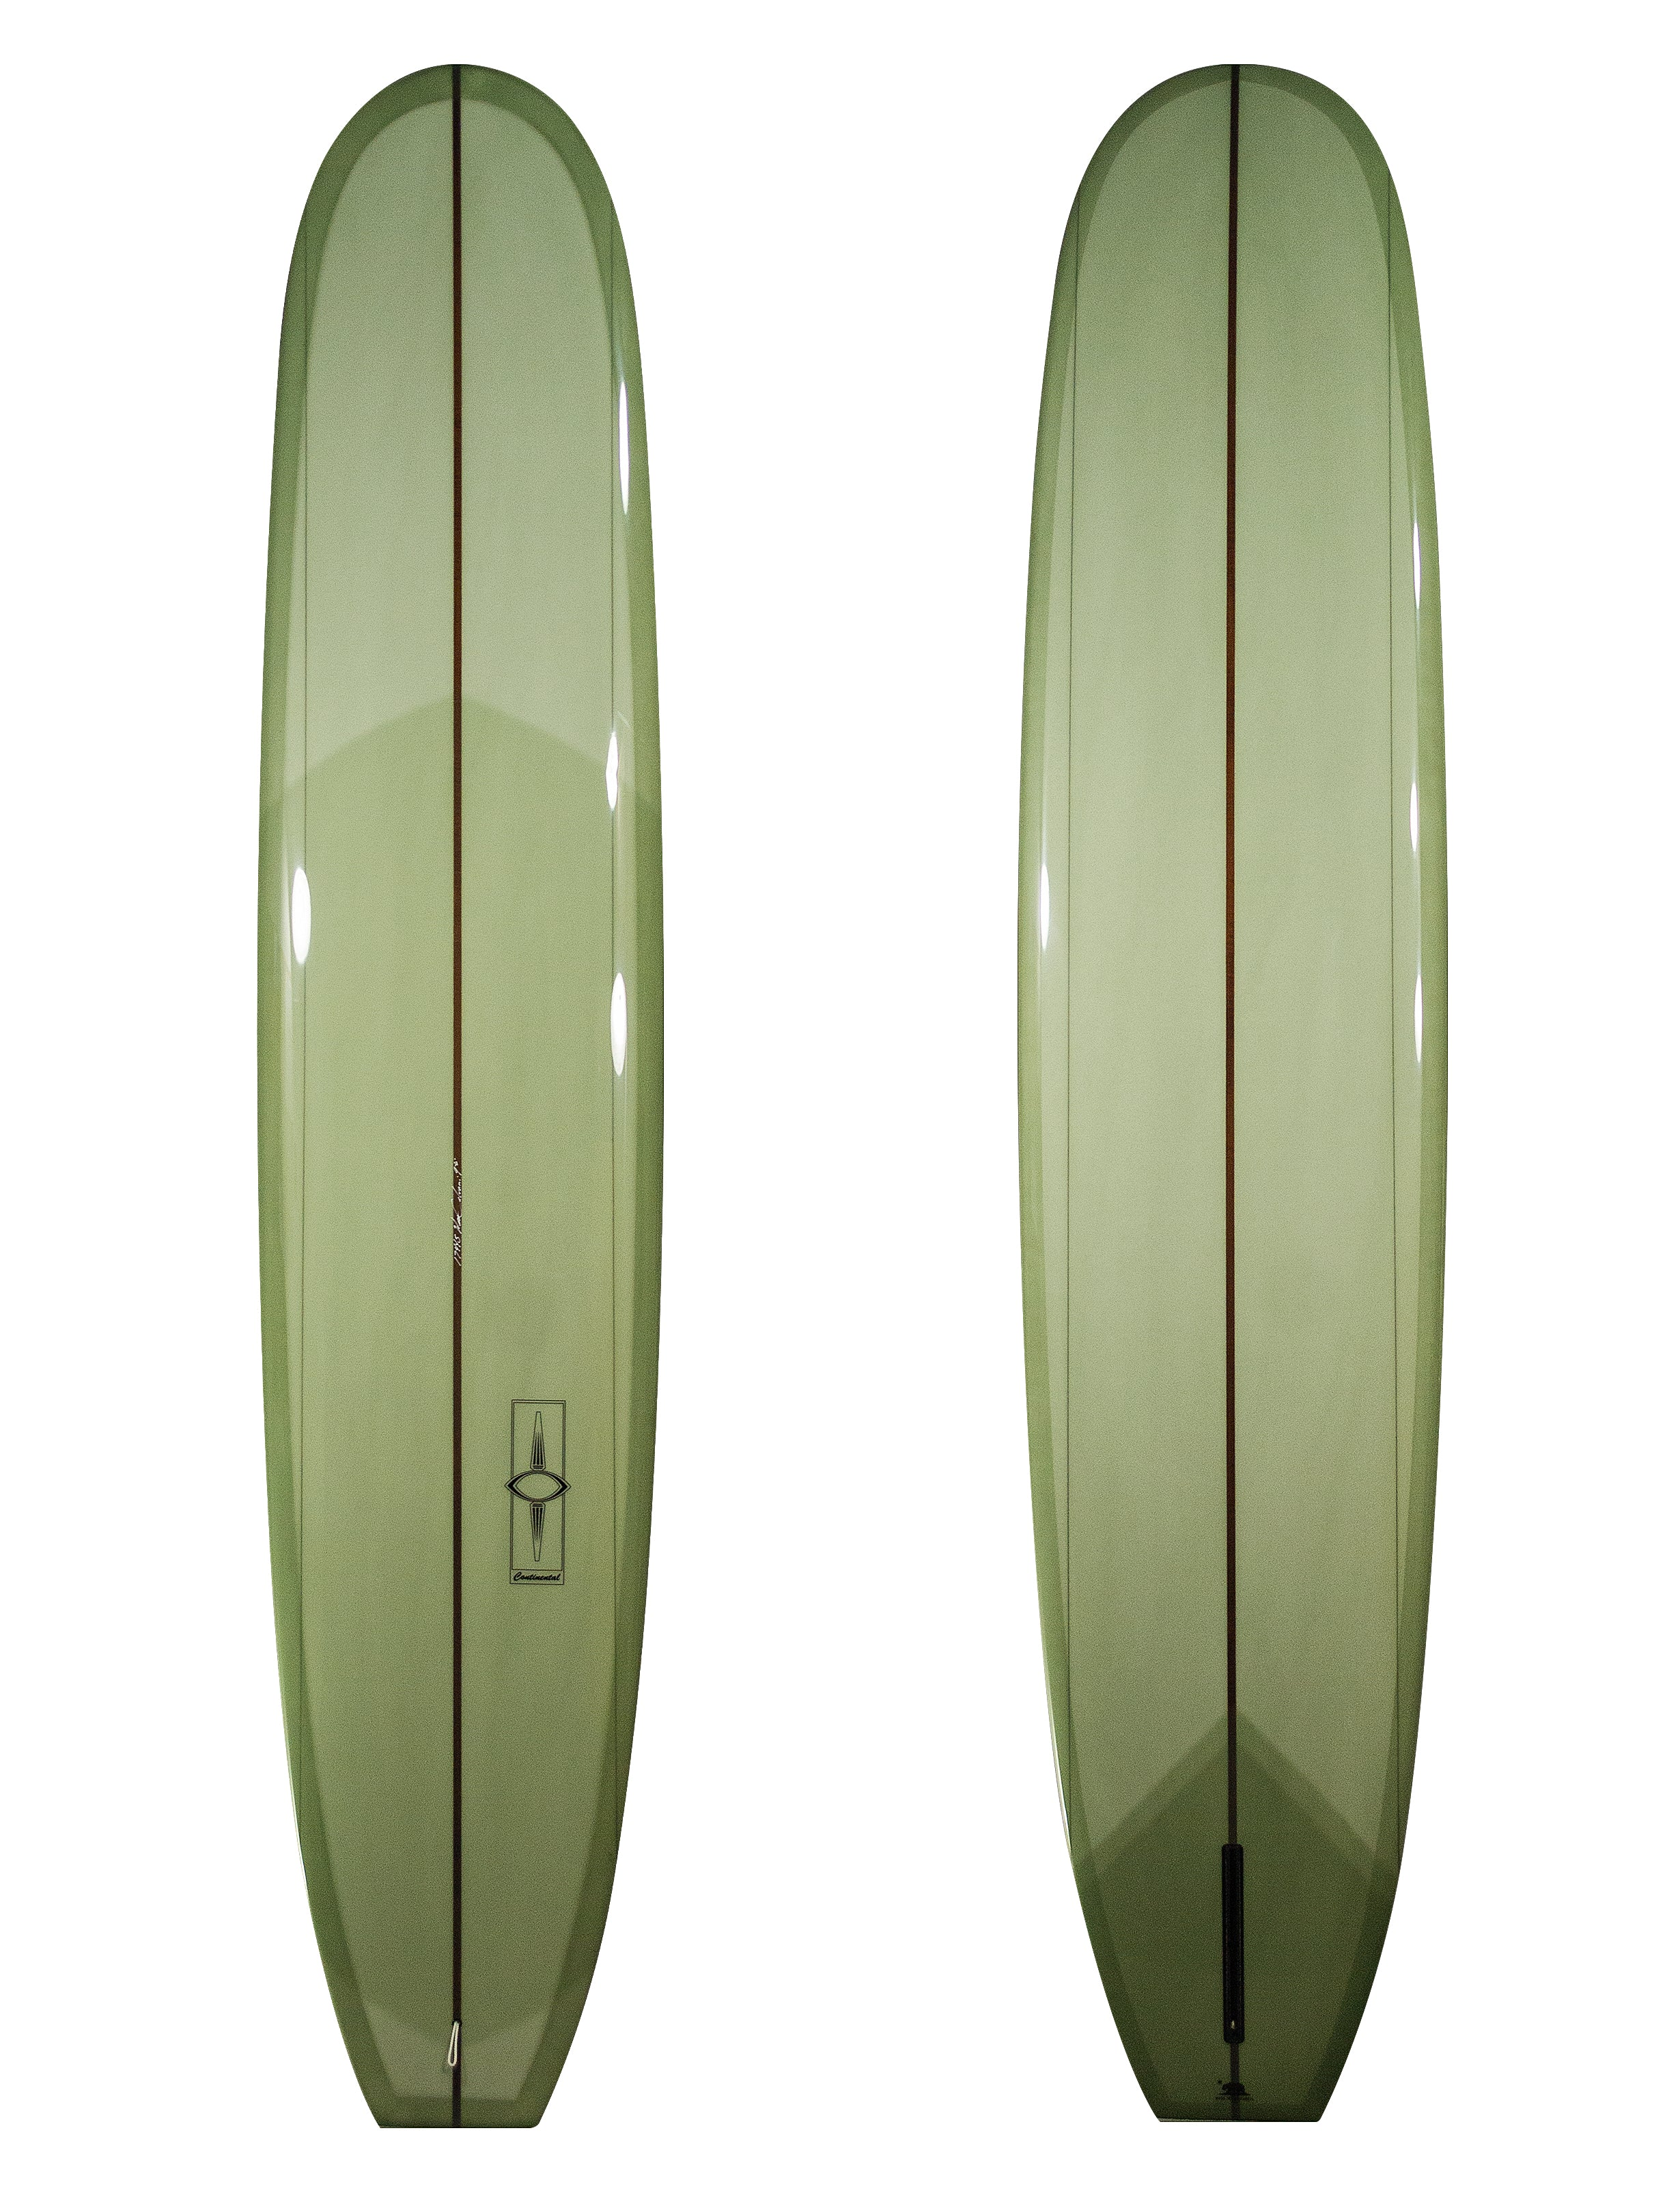 Bing Surfboards Continental Model